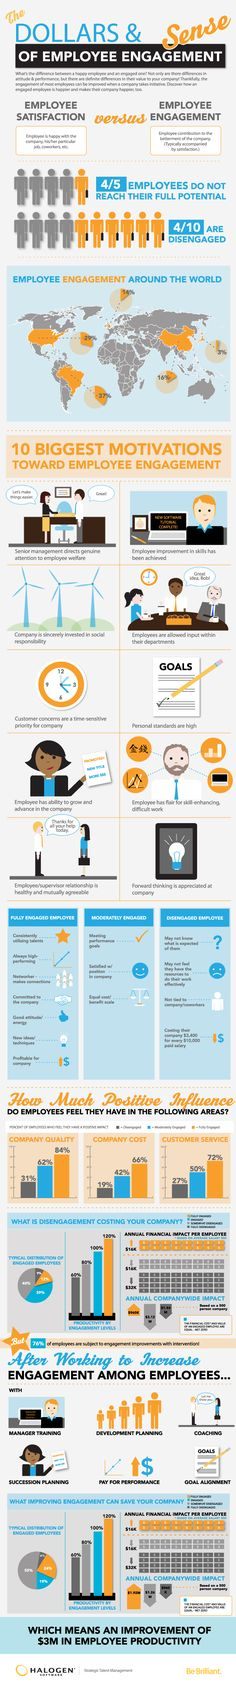 View this infographic that maps out some of the costs of disengaged employees so you can make the case for employee engagement initiatives